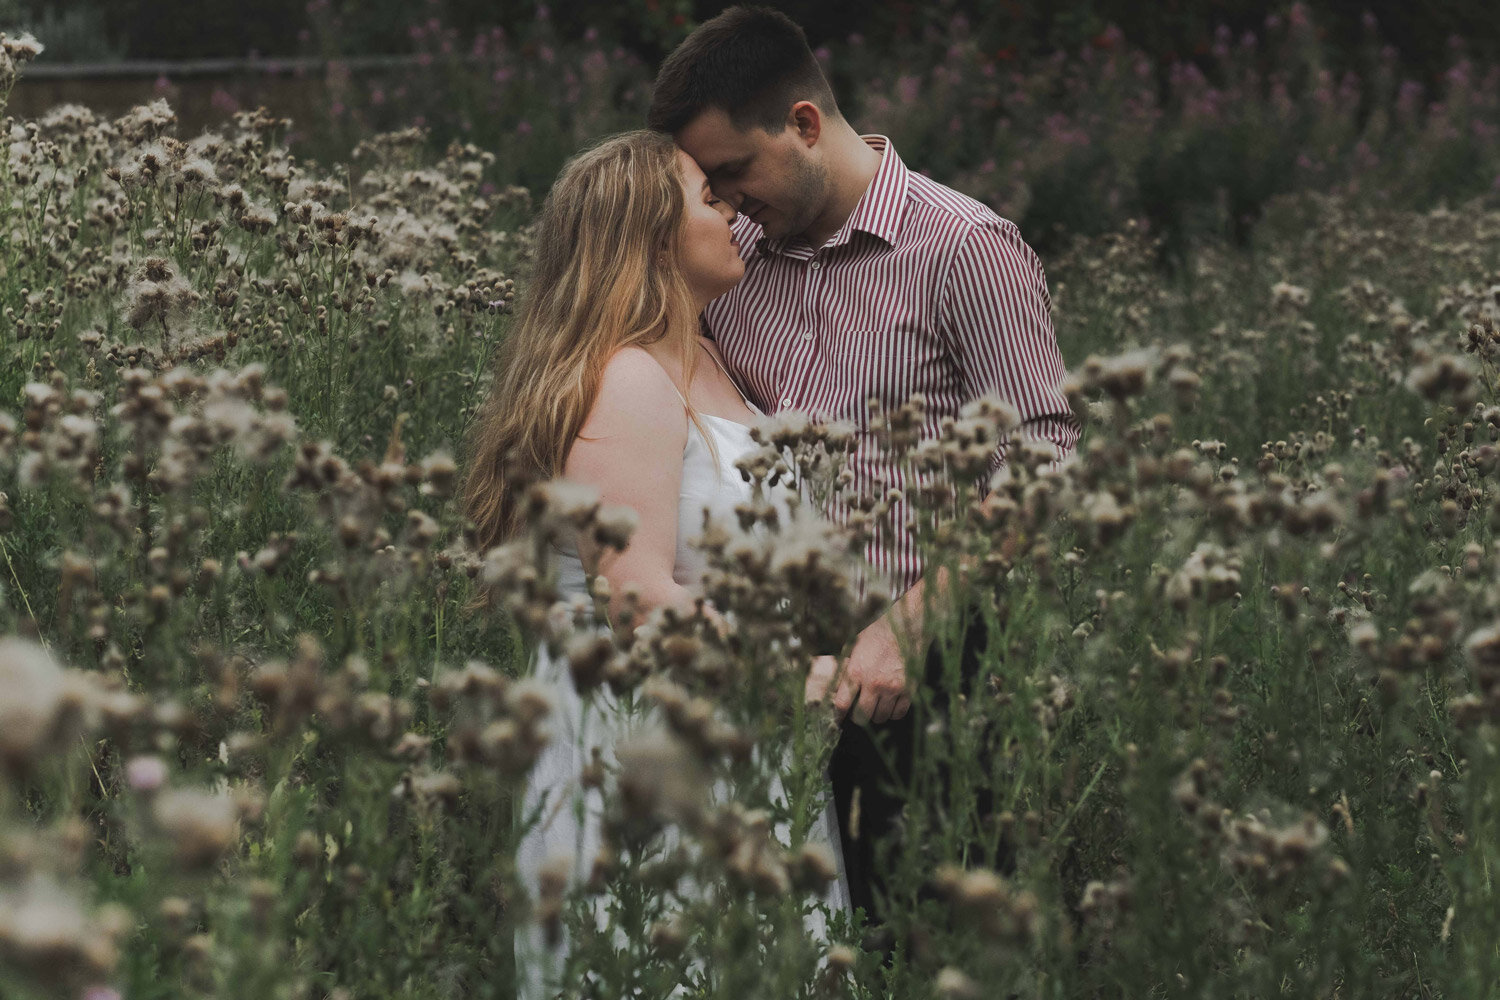 Hampstead Heath Engagement shoot - Tara & AlexLondon Engagement Photographer